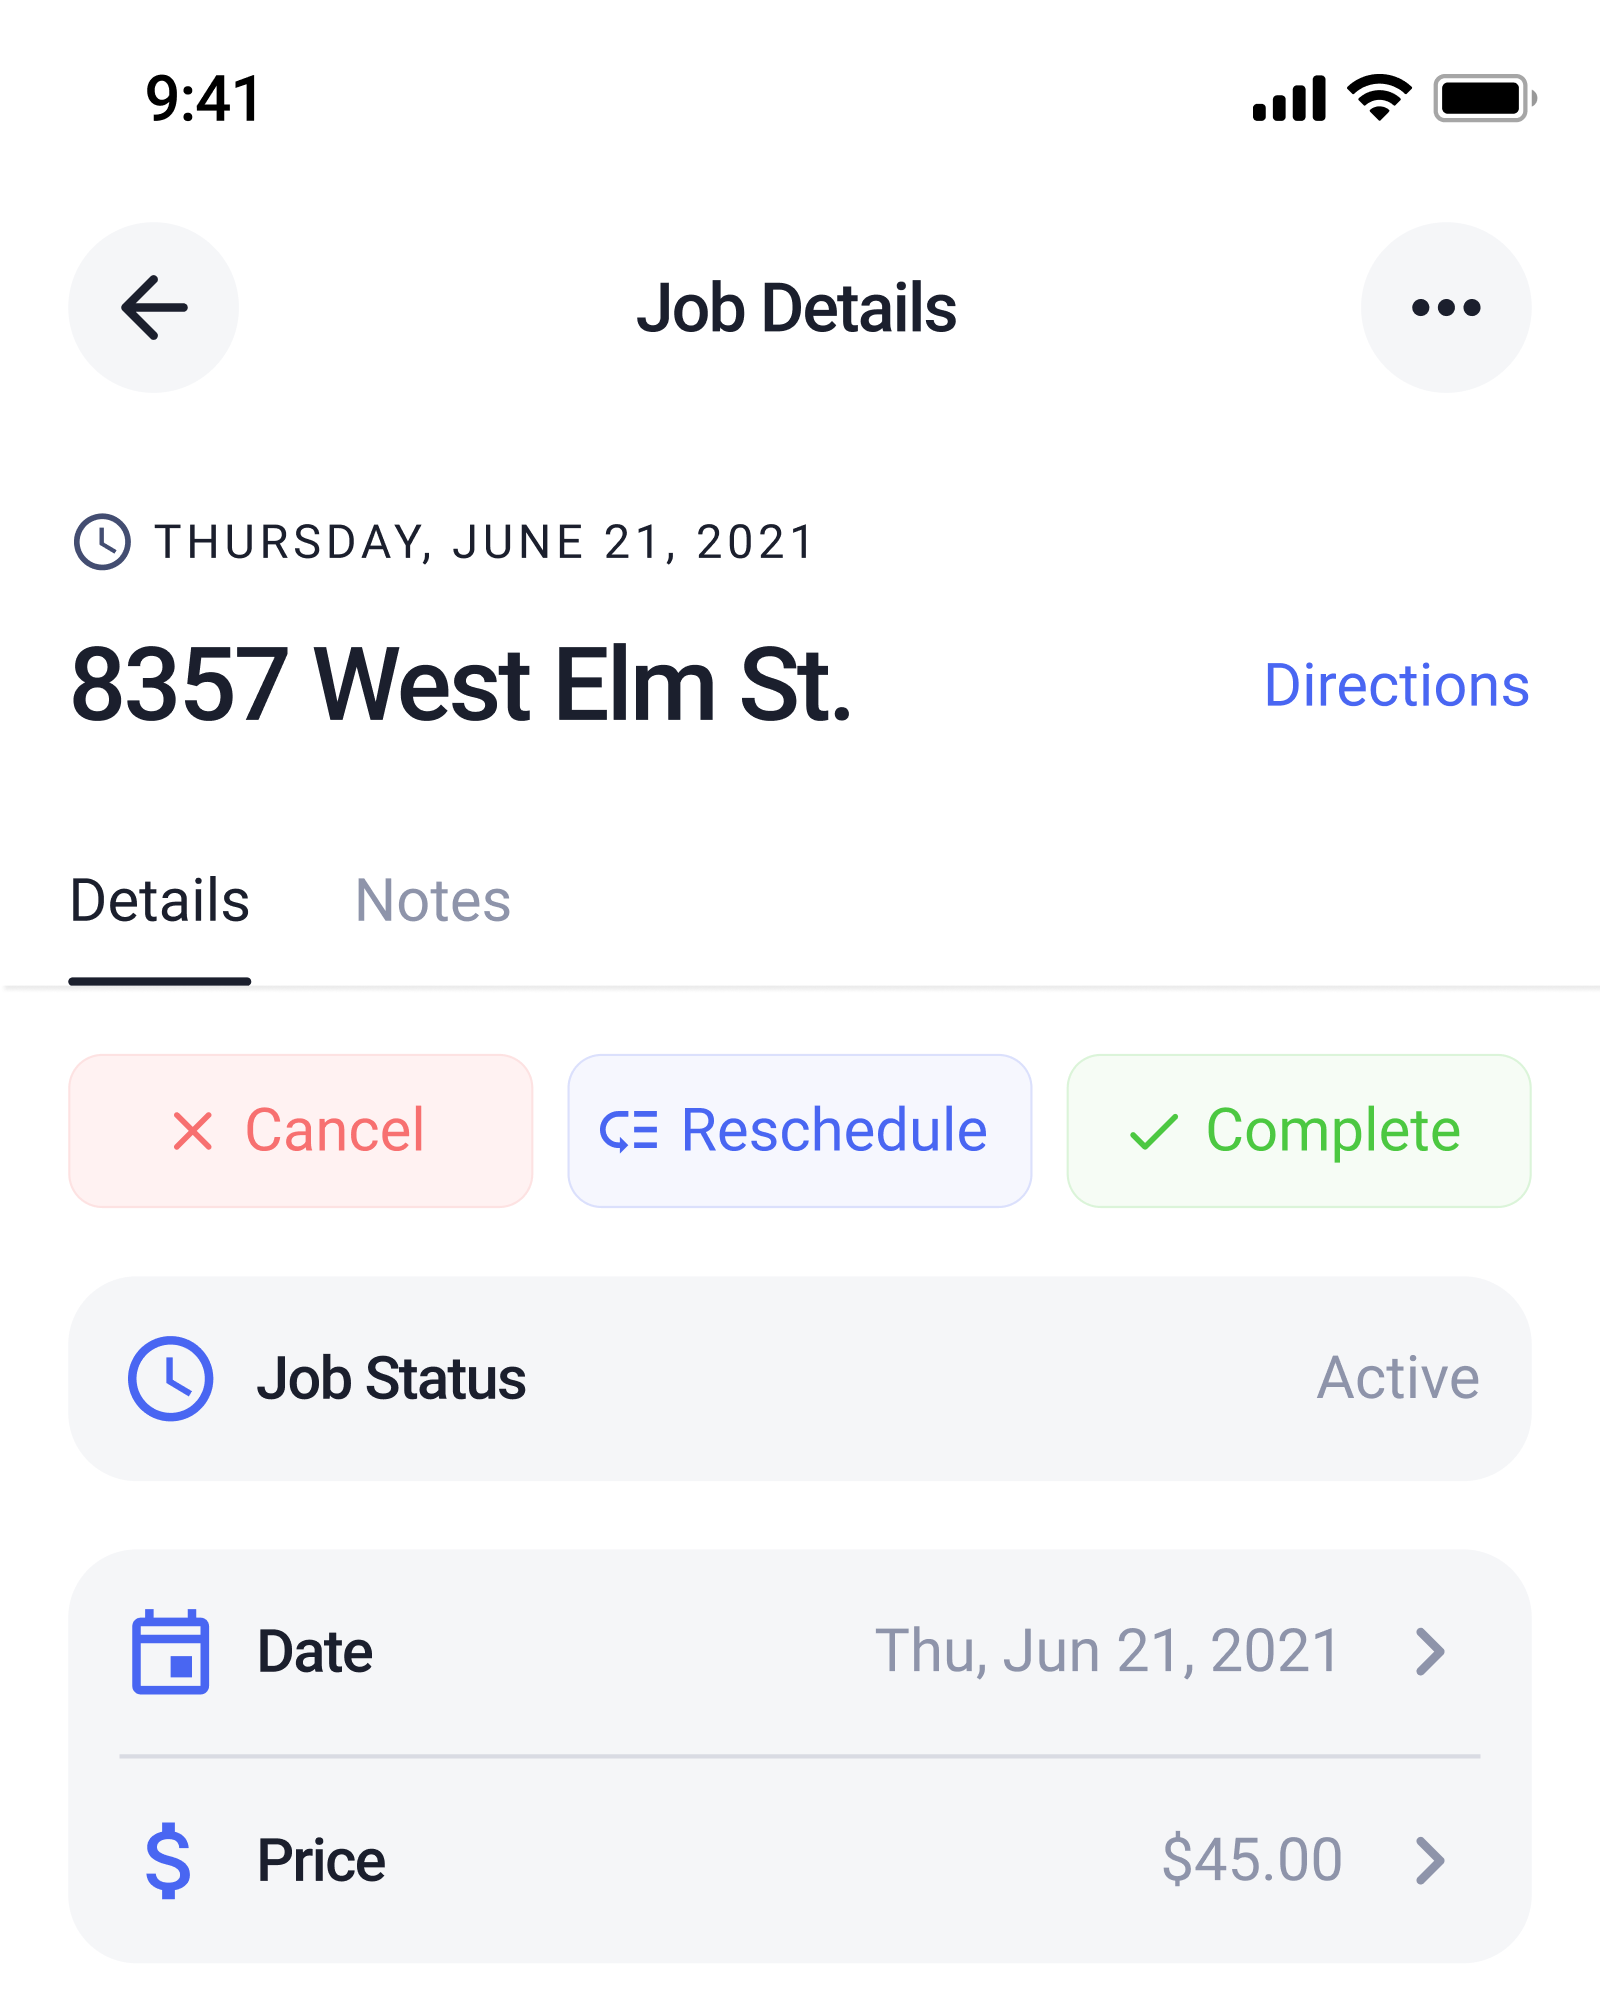 Screenshot of the Job Details screen in the Check App